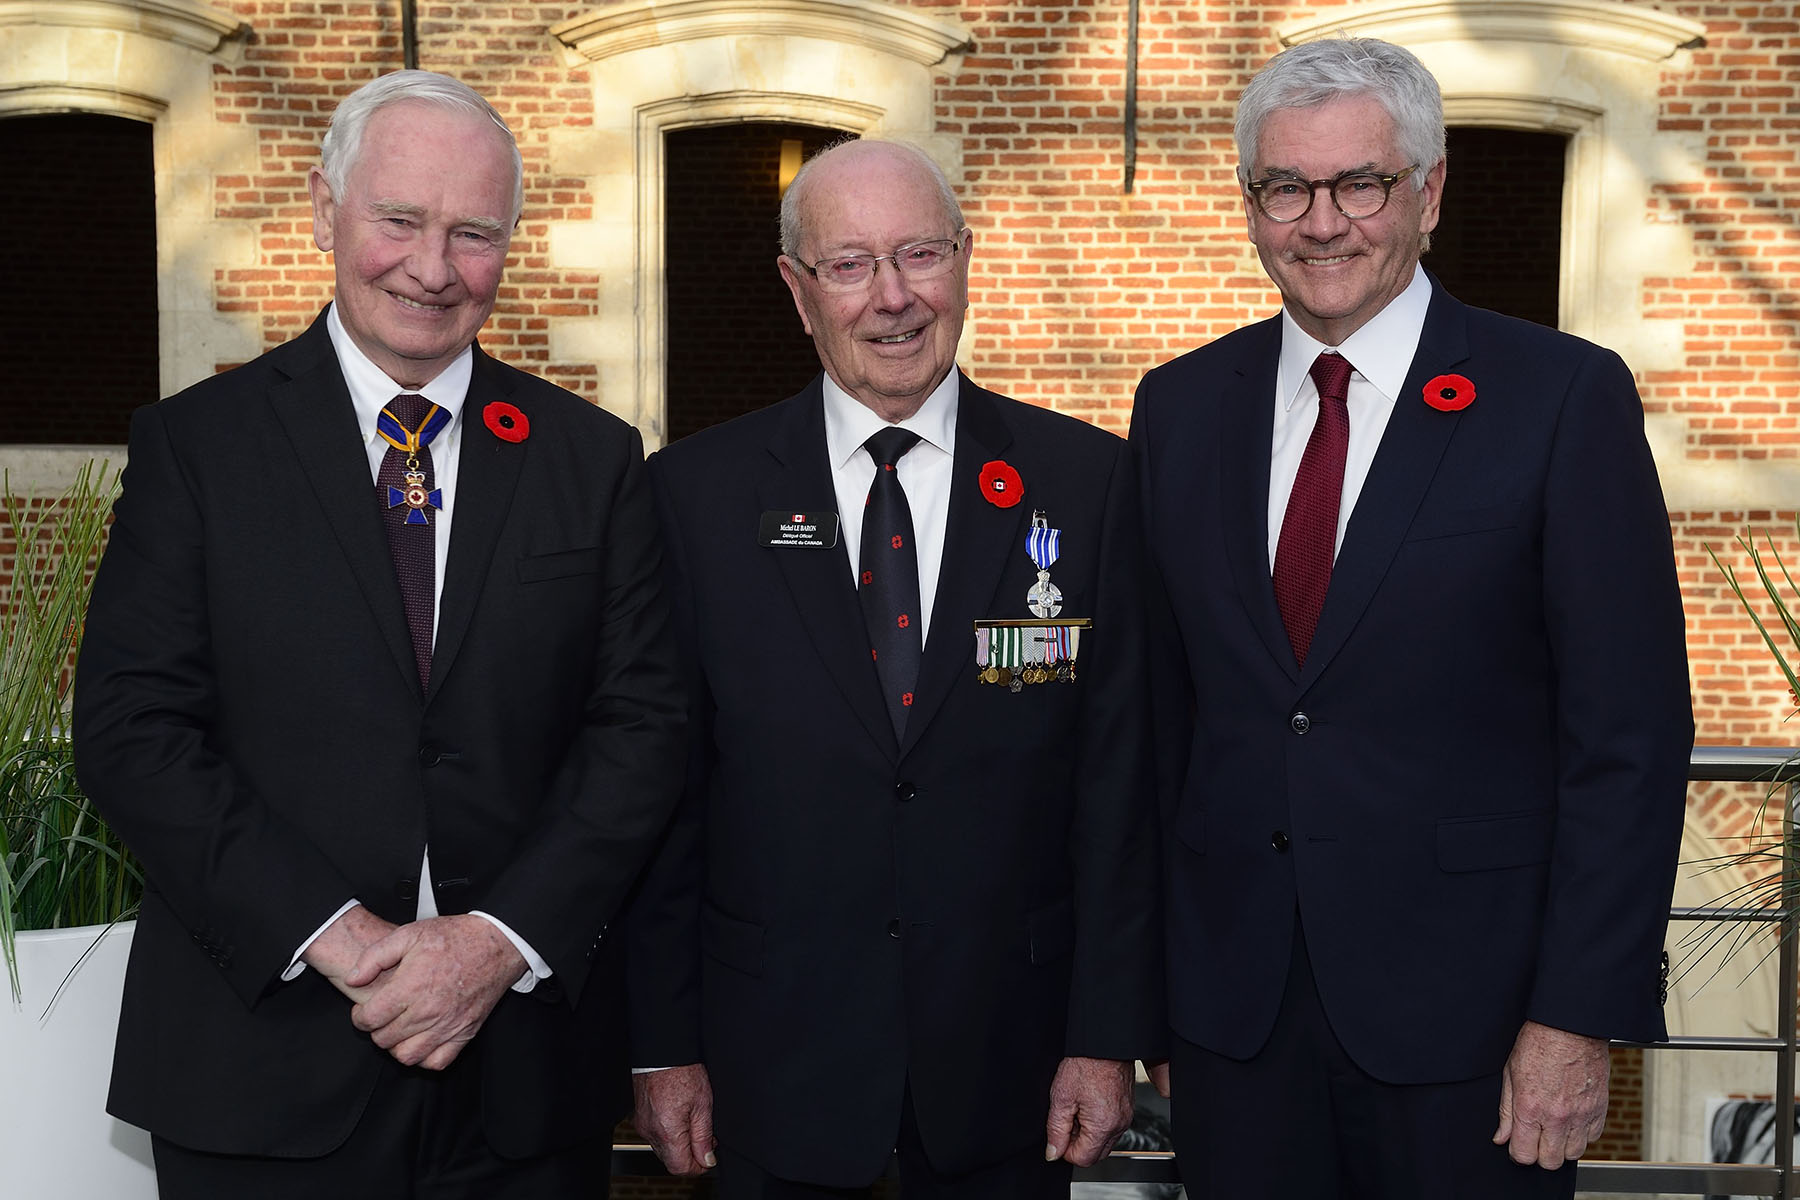 His Excellency presented a Meritorious Service Medal (Civil Division) to Michel Le Baron (centre) during a private ceremony in Lille, France. They were accompanied by Lawrence Cannon, Canadian Ambassador to France (right).